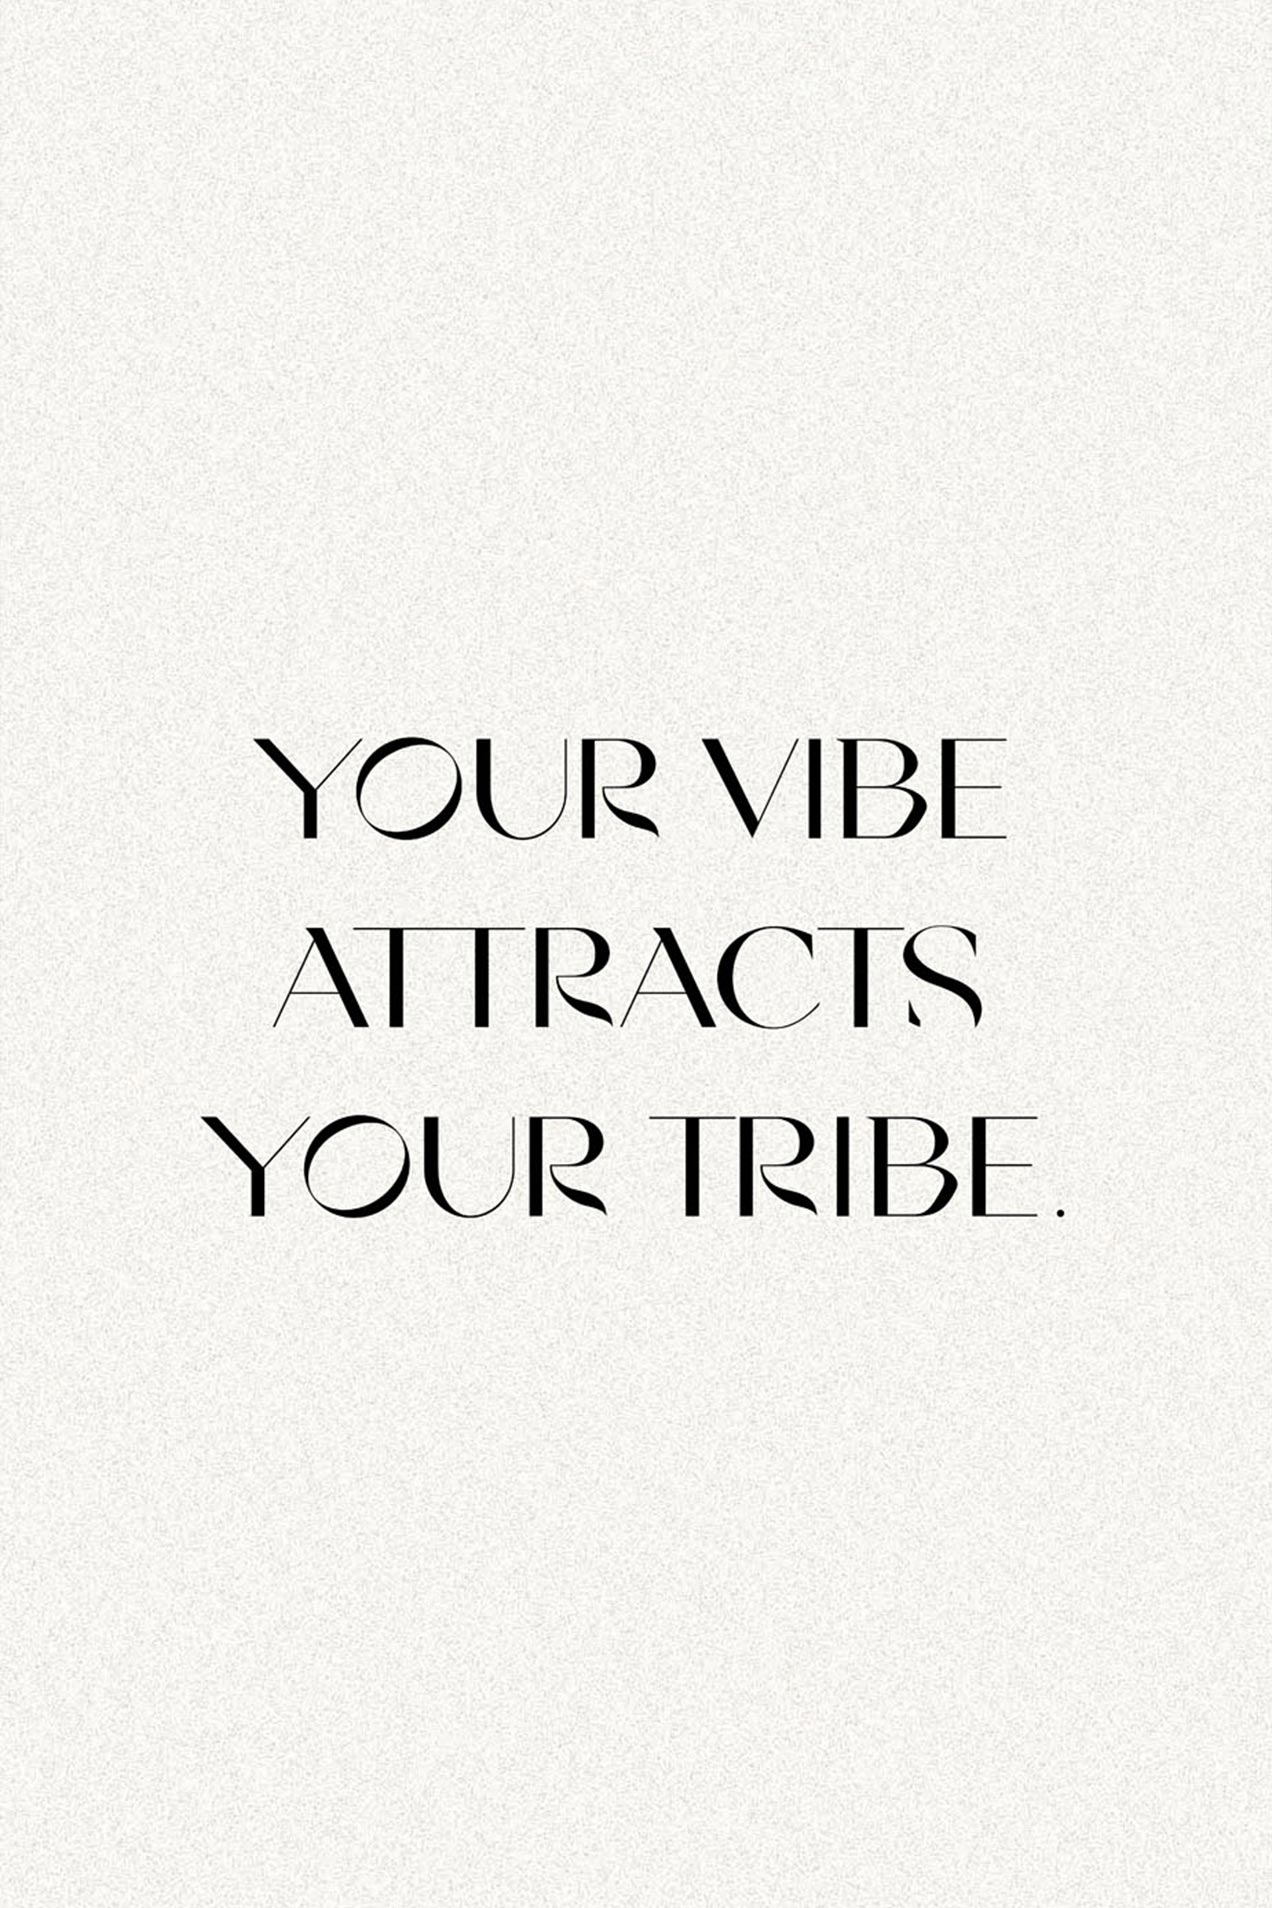 Your Vibe Attracts Your Tribe – Brand Clarity by Mindt Design Studio